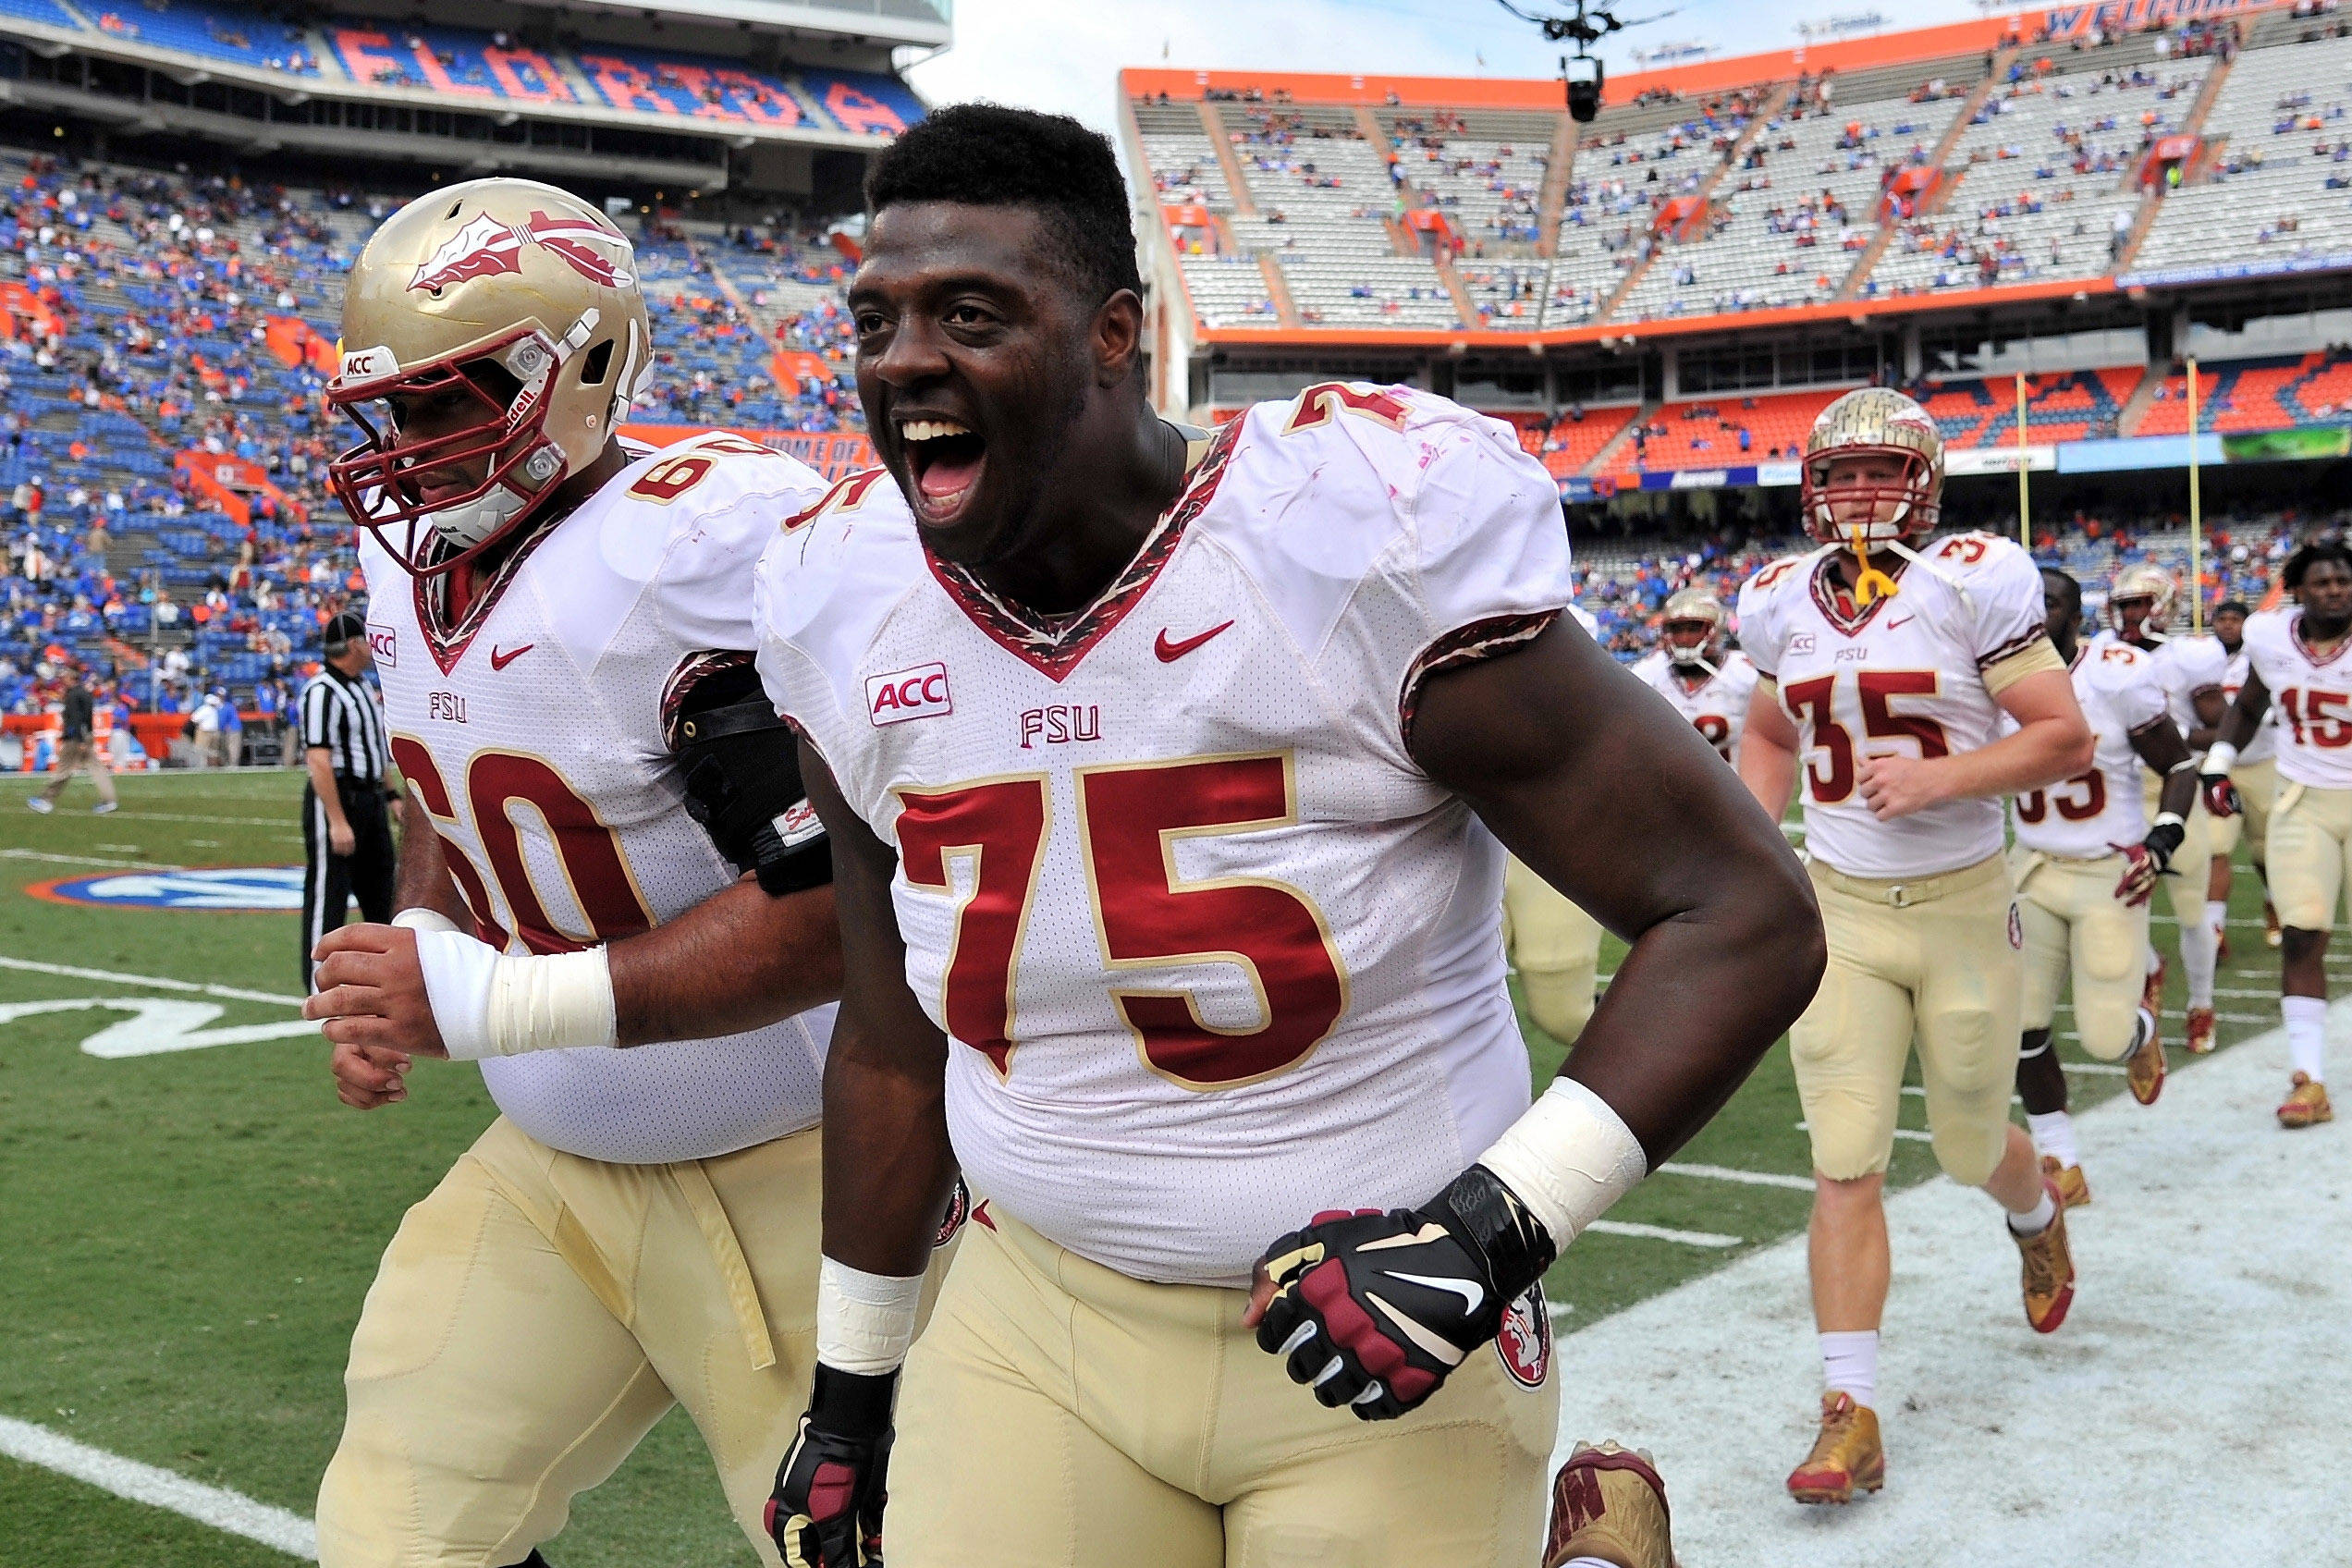 Cameron Erving (75) runs off the field. Mandatory Credit: Steve Mitchell-USA TODAY Sports